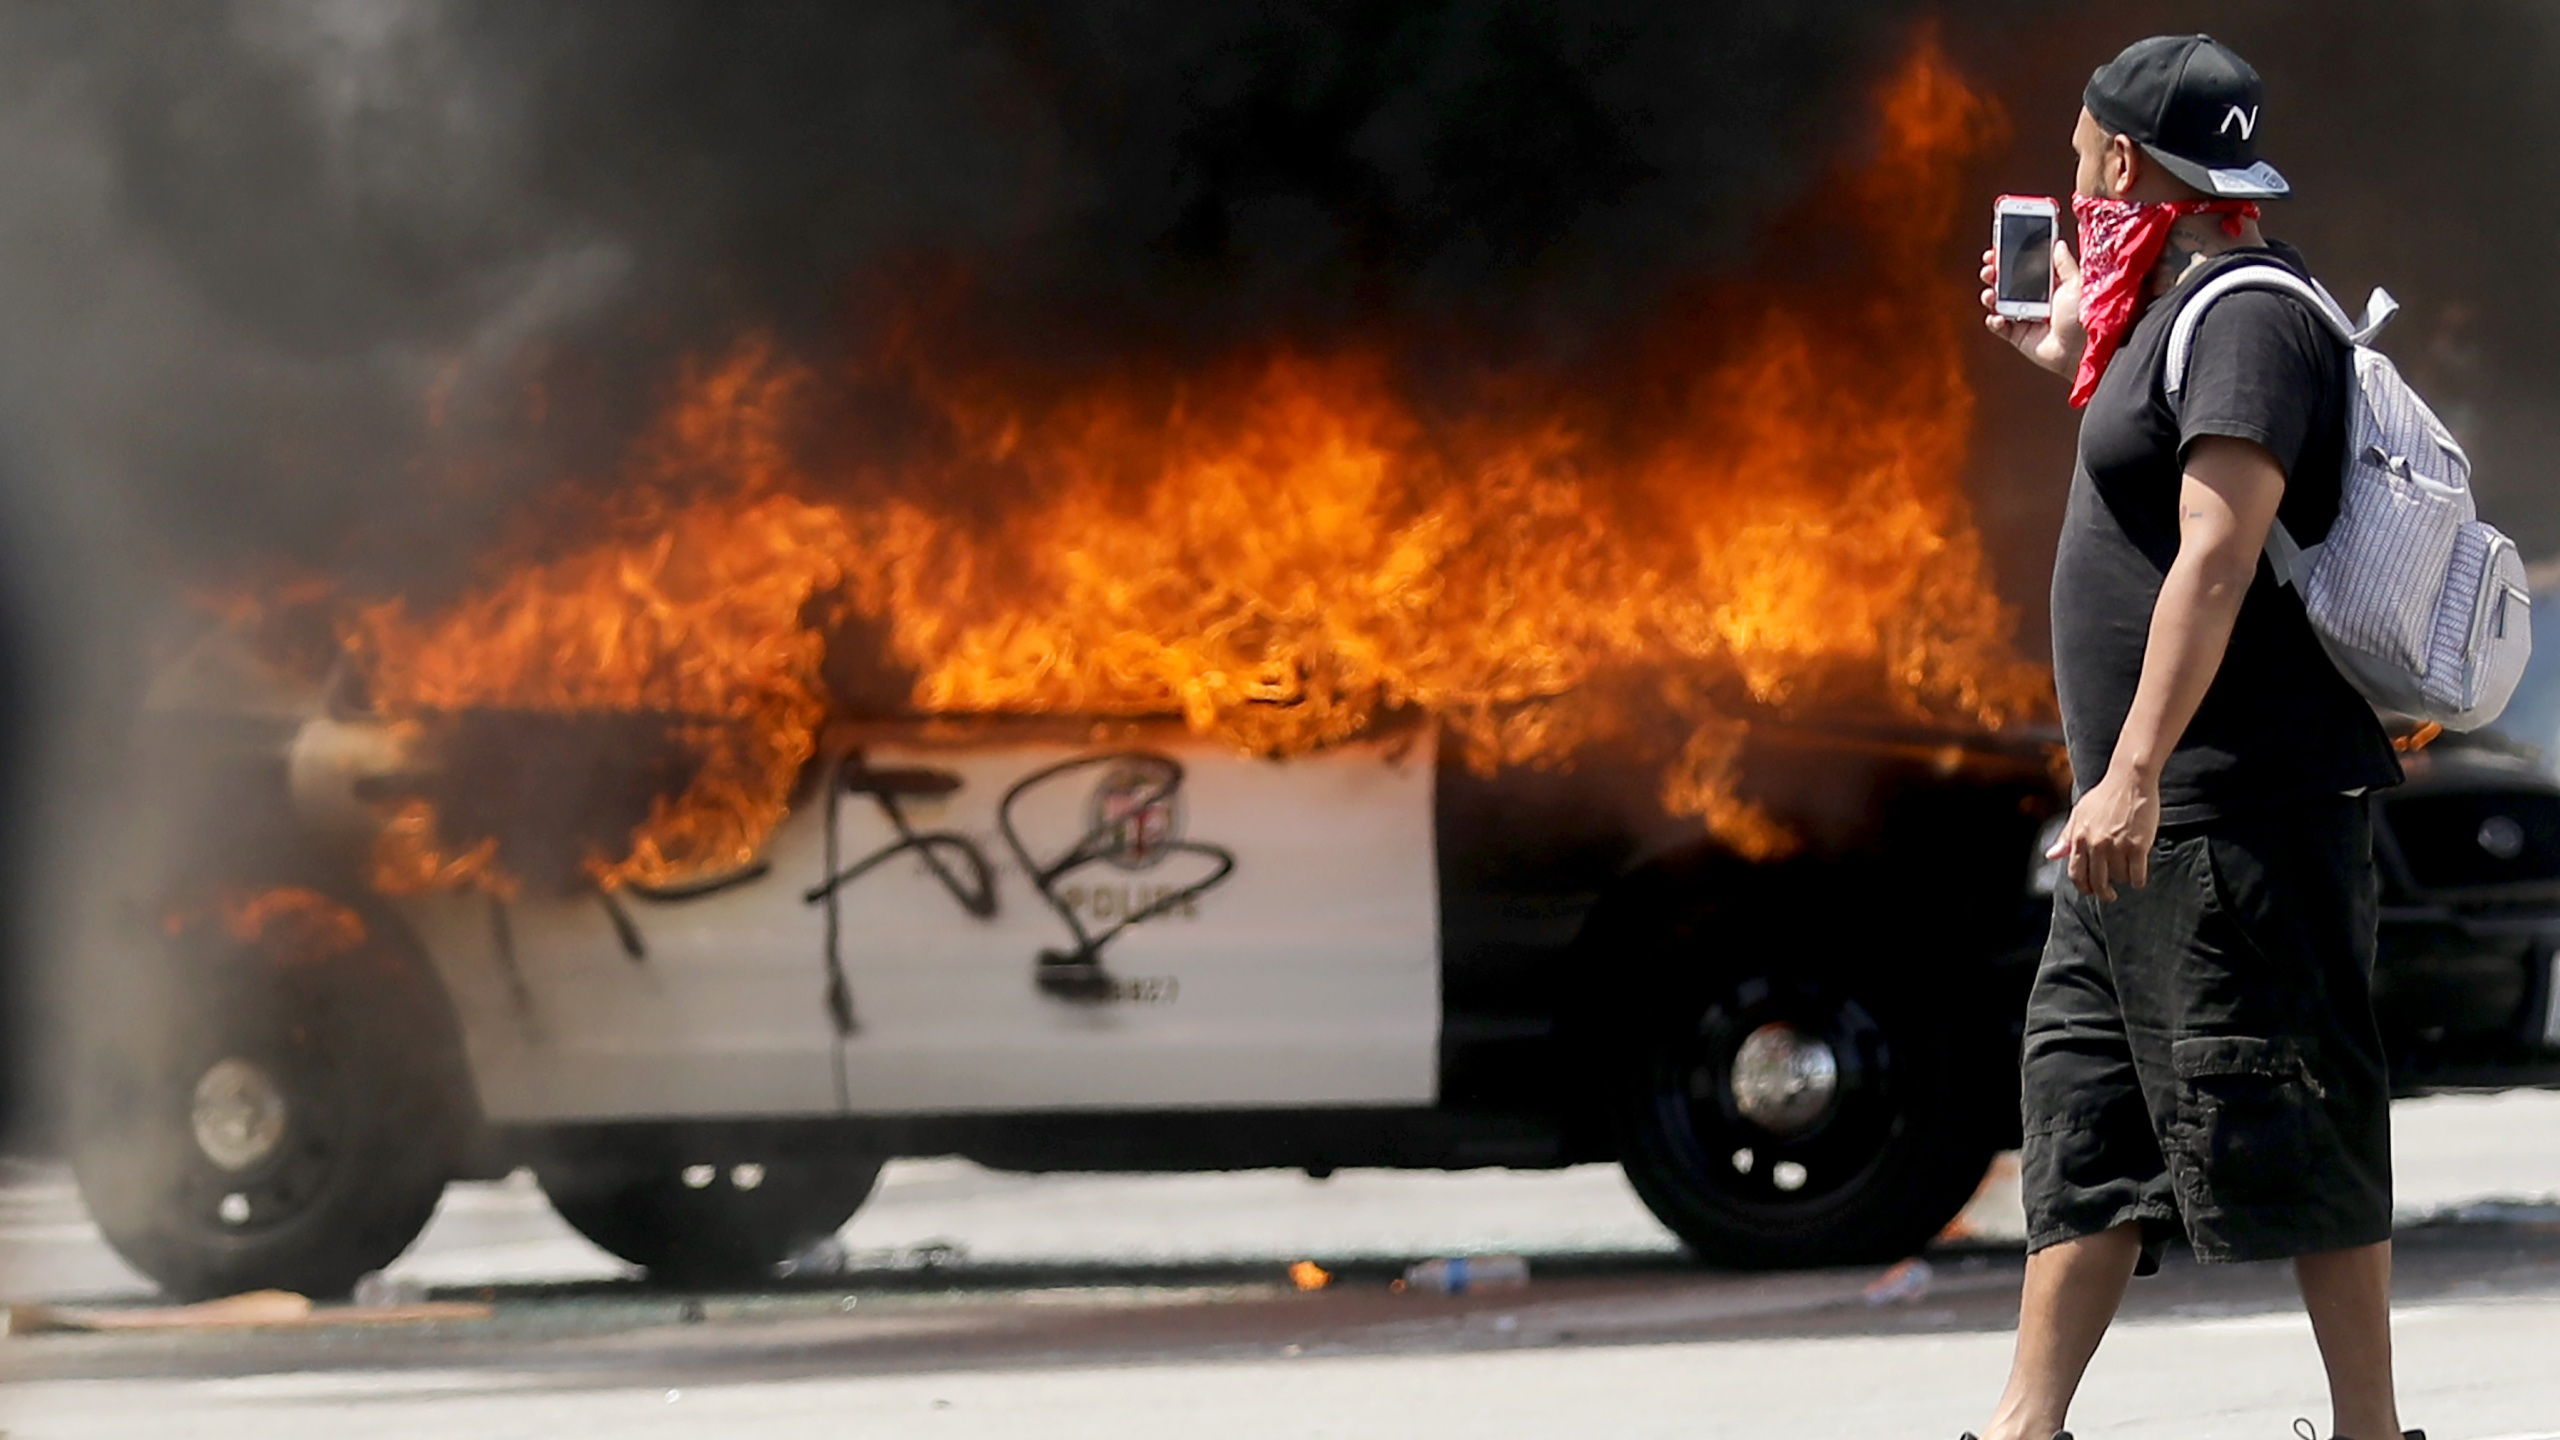 An LAPD vehicle burns after being set alight by protestors during demonstrations centered in the Fairfax District following the death of George Floyd on May 30, 2020. The vast majority of protestors demonstrated peacefully. (Mario Tama/Getty Images)